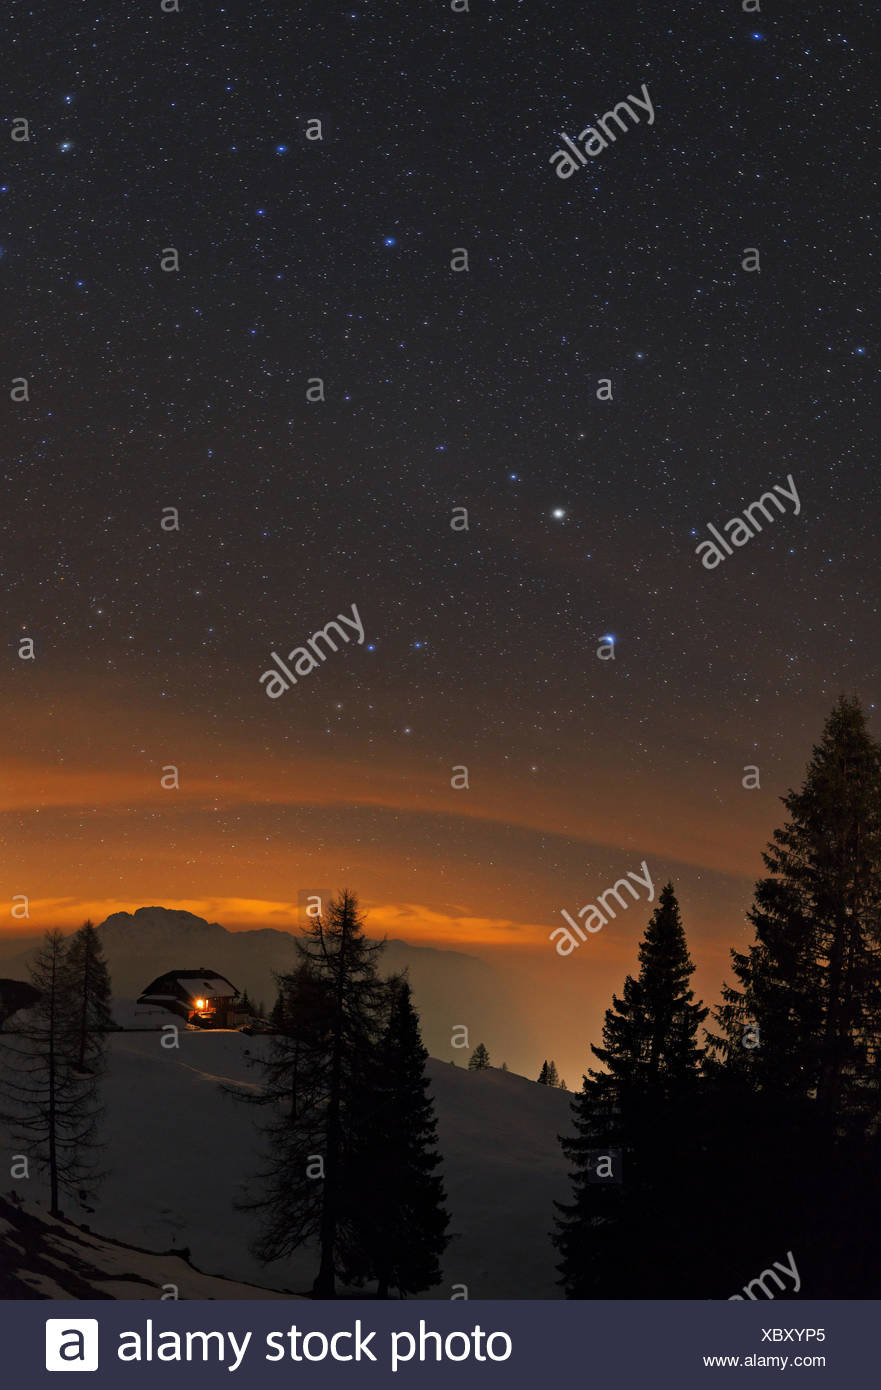 Starry sky with planet Saturn, the bright spot in